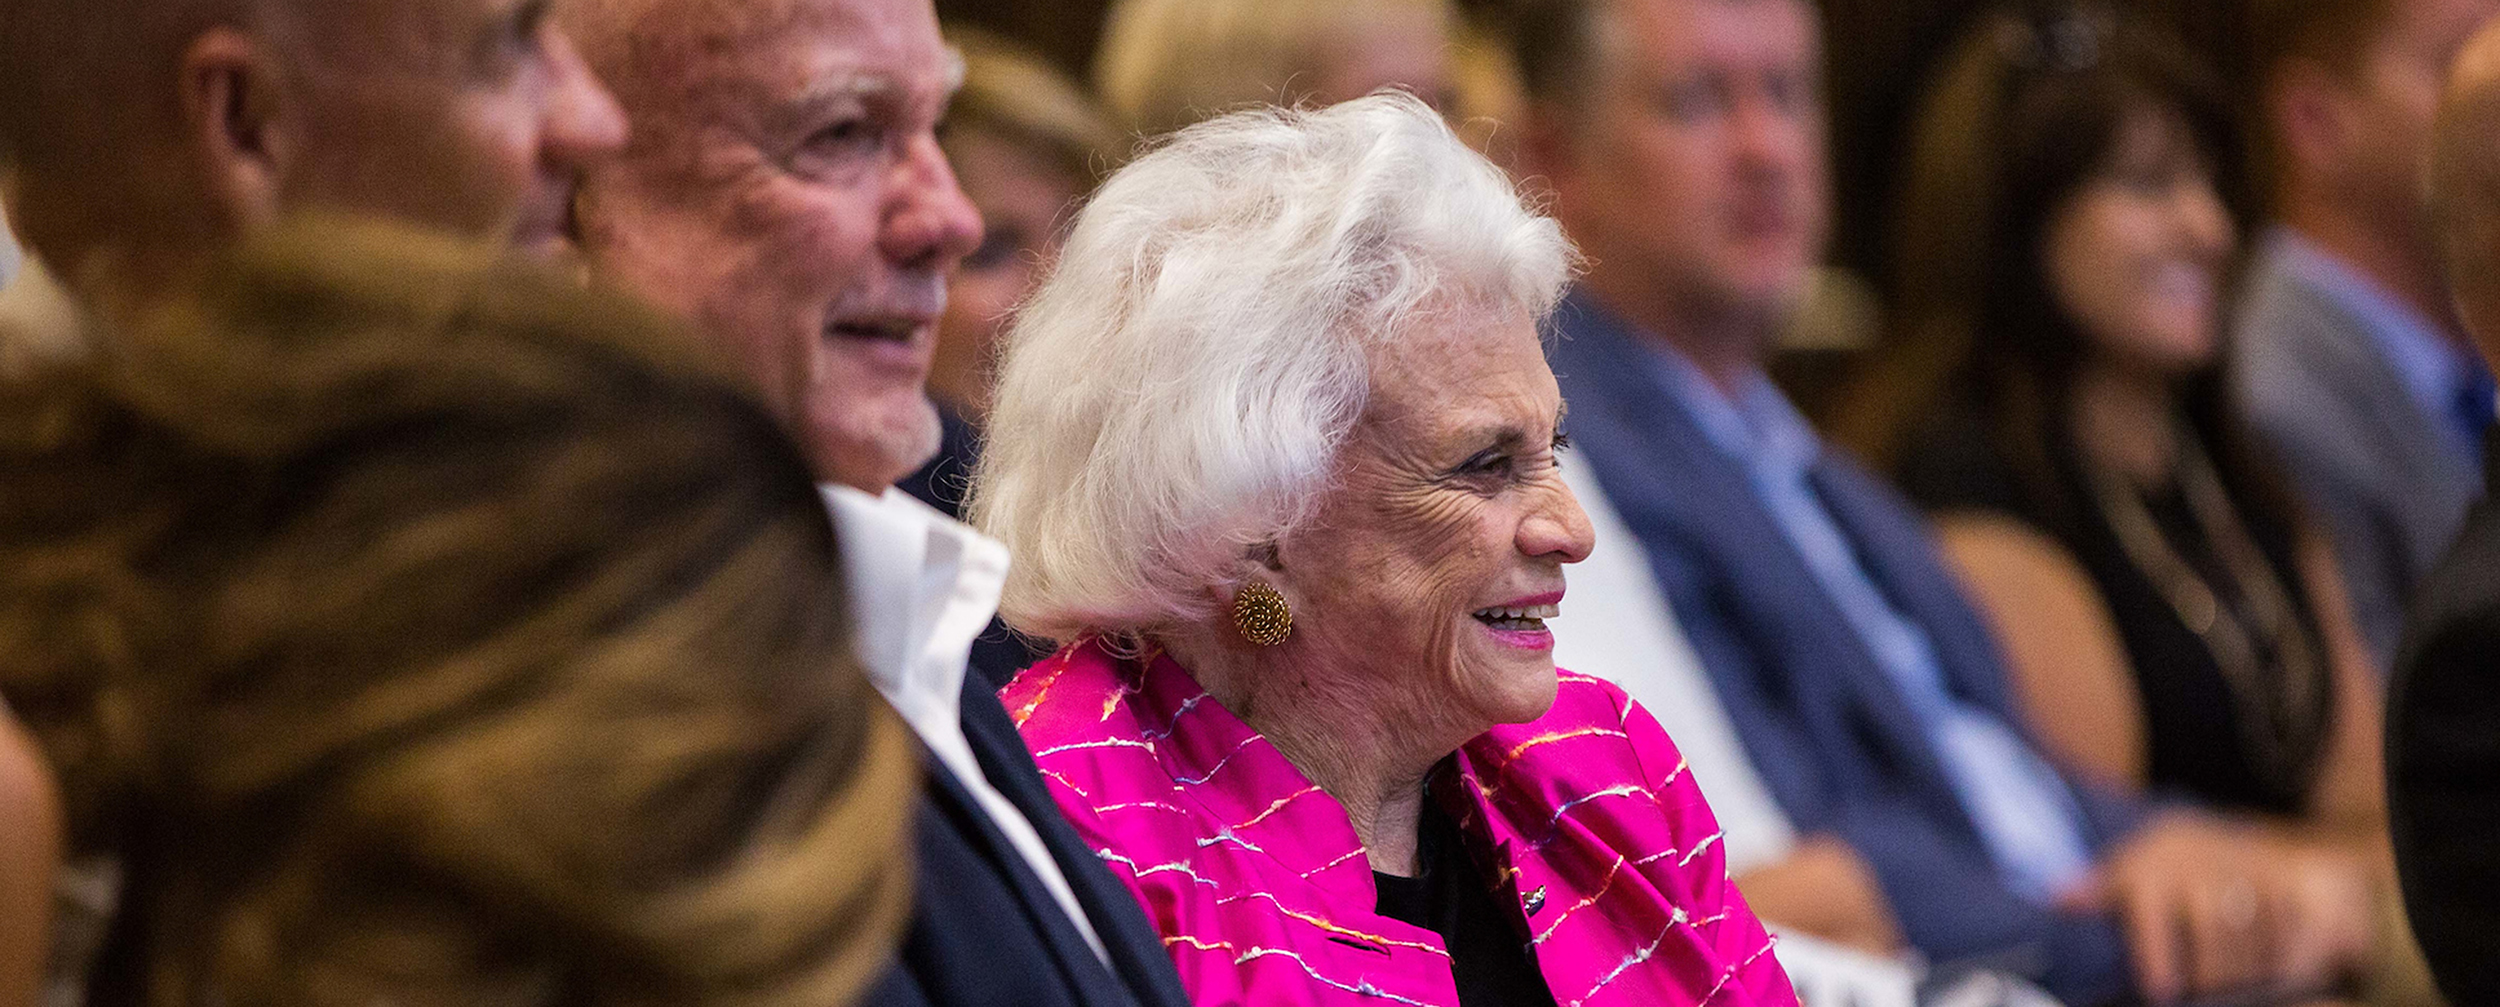 Photo of former Supreme Court Justice Sandra Day O'Connor smiling at an event